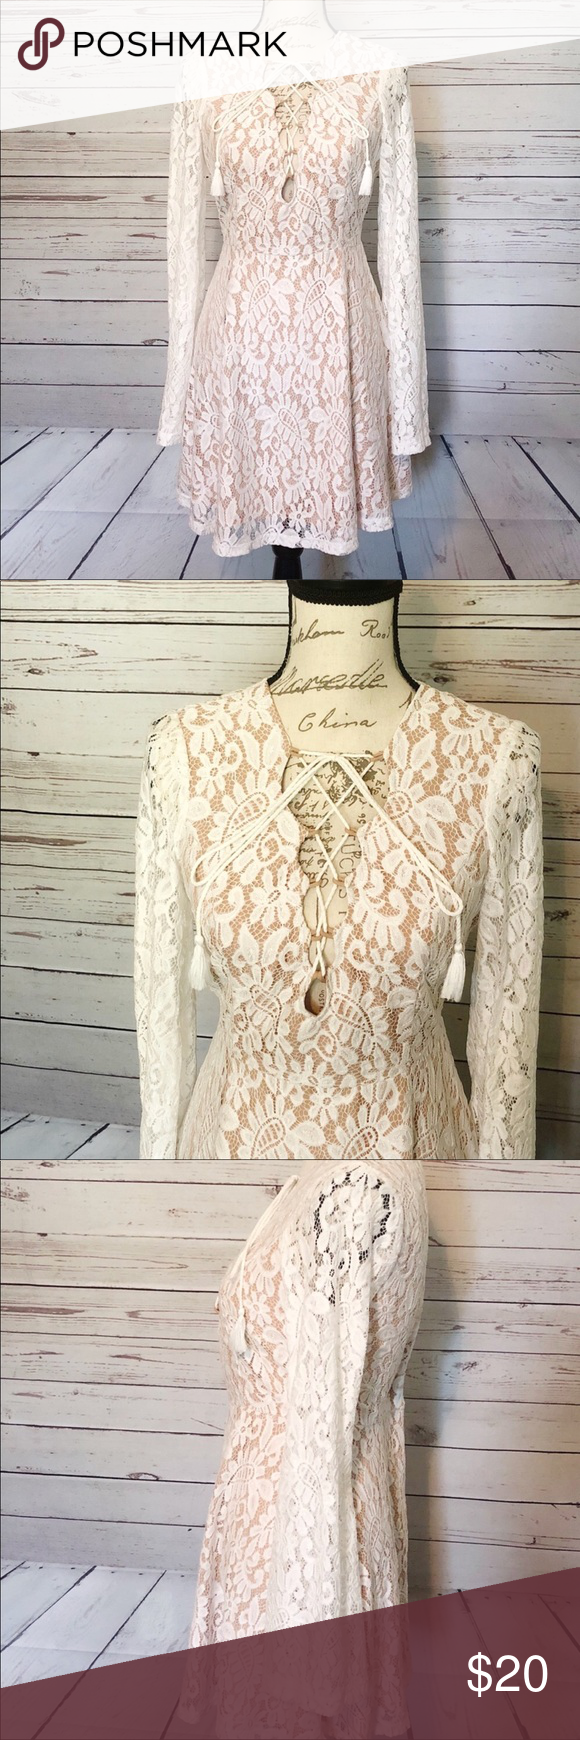 Forever 21 Lace Covered Long Sleeve Dress Lace Covered Long Sleeve Dress With Tan Lining Fits True To Siz With Images Long Sleeve Lace Dress Tan Dresses Long Sleeve Dress [ 1740 x 580 Pixel ]